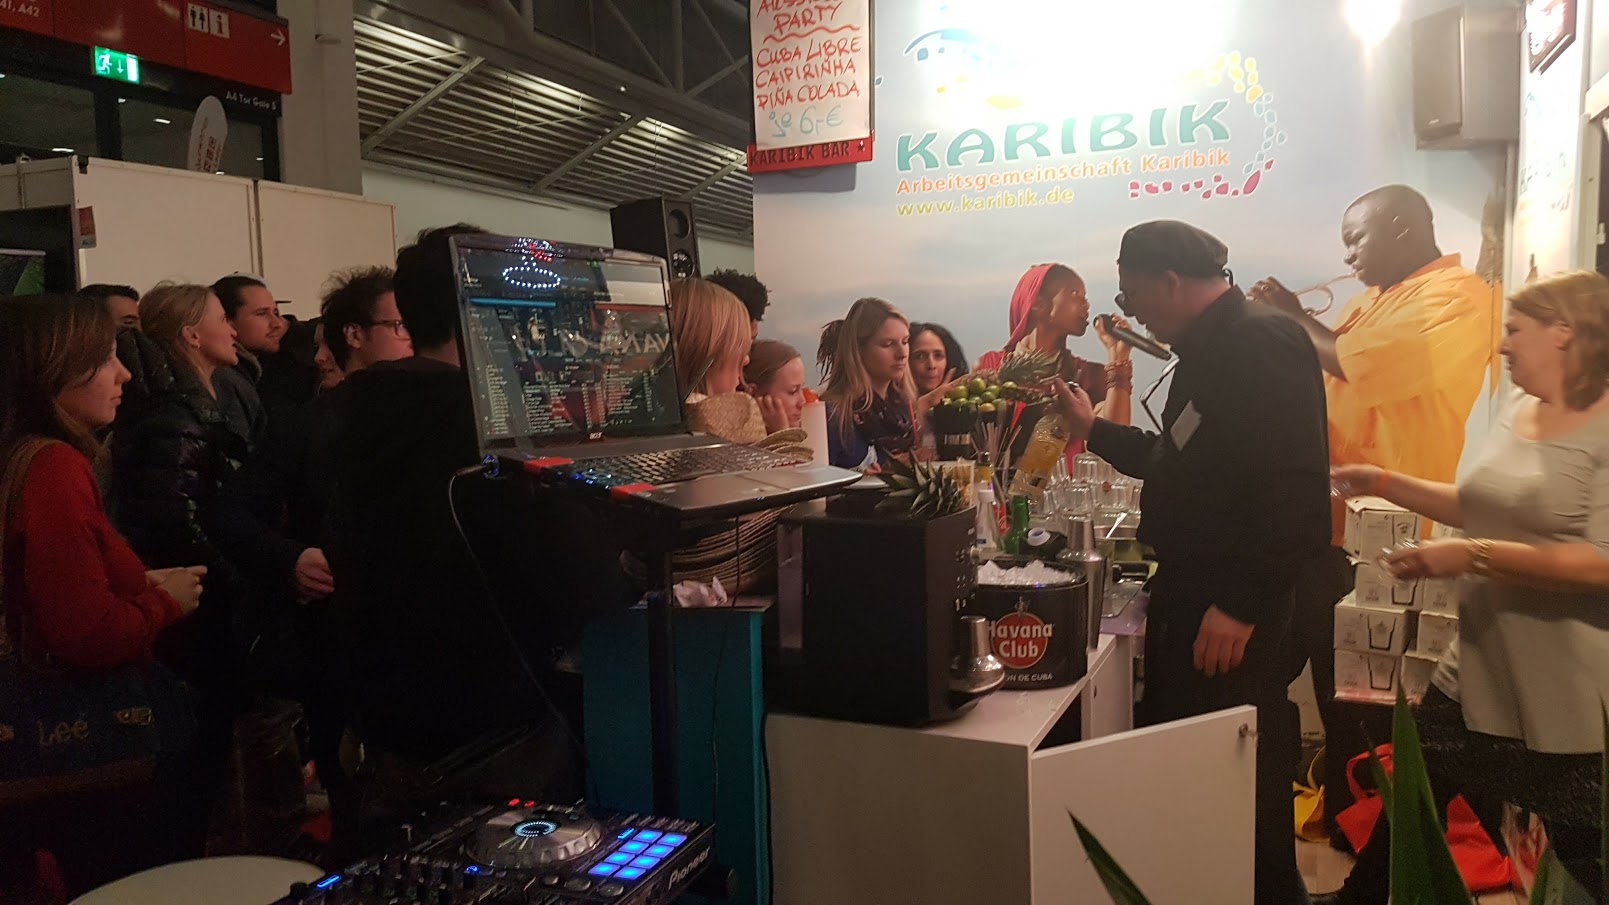 Latino Party DJing @ Booth Party Fair Munich